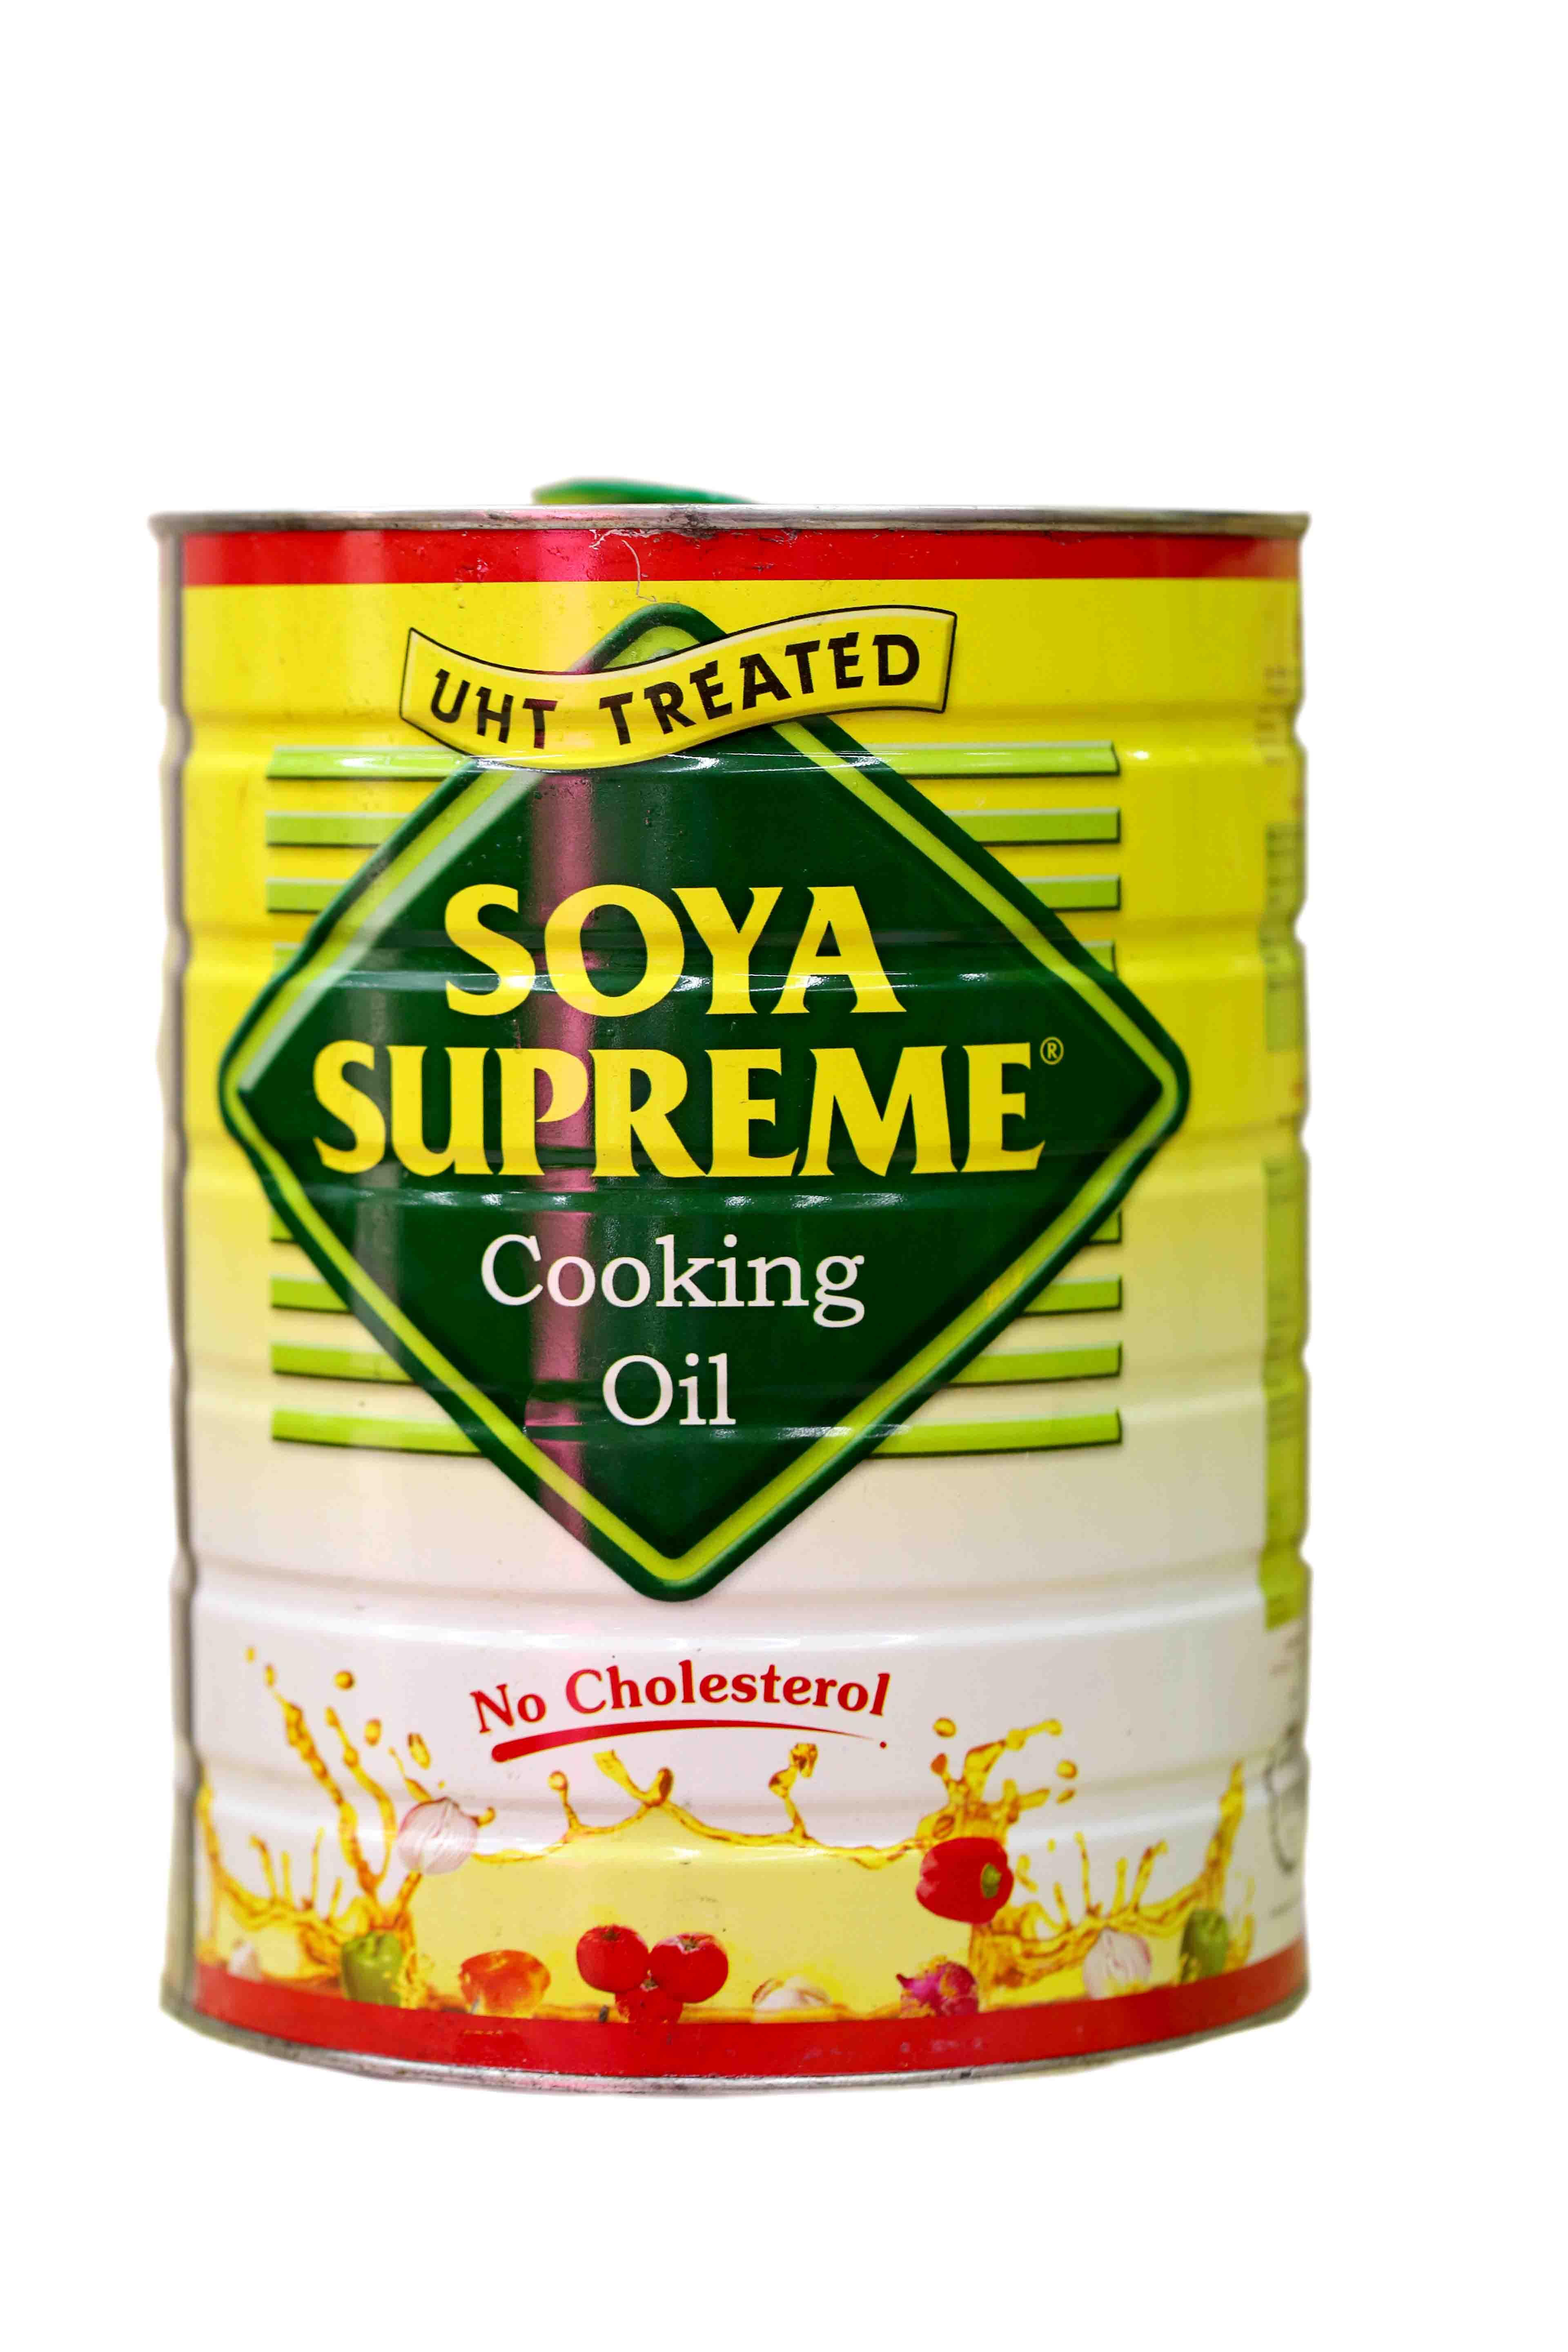 Soya Supreme Cooking Oil Tin 5ltr